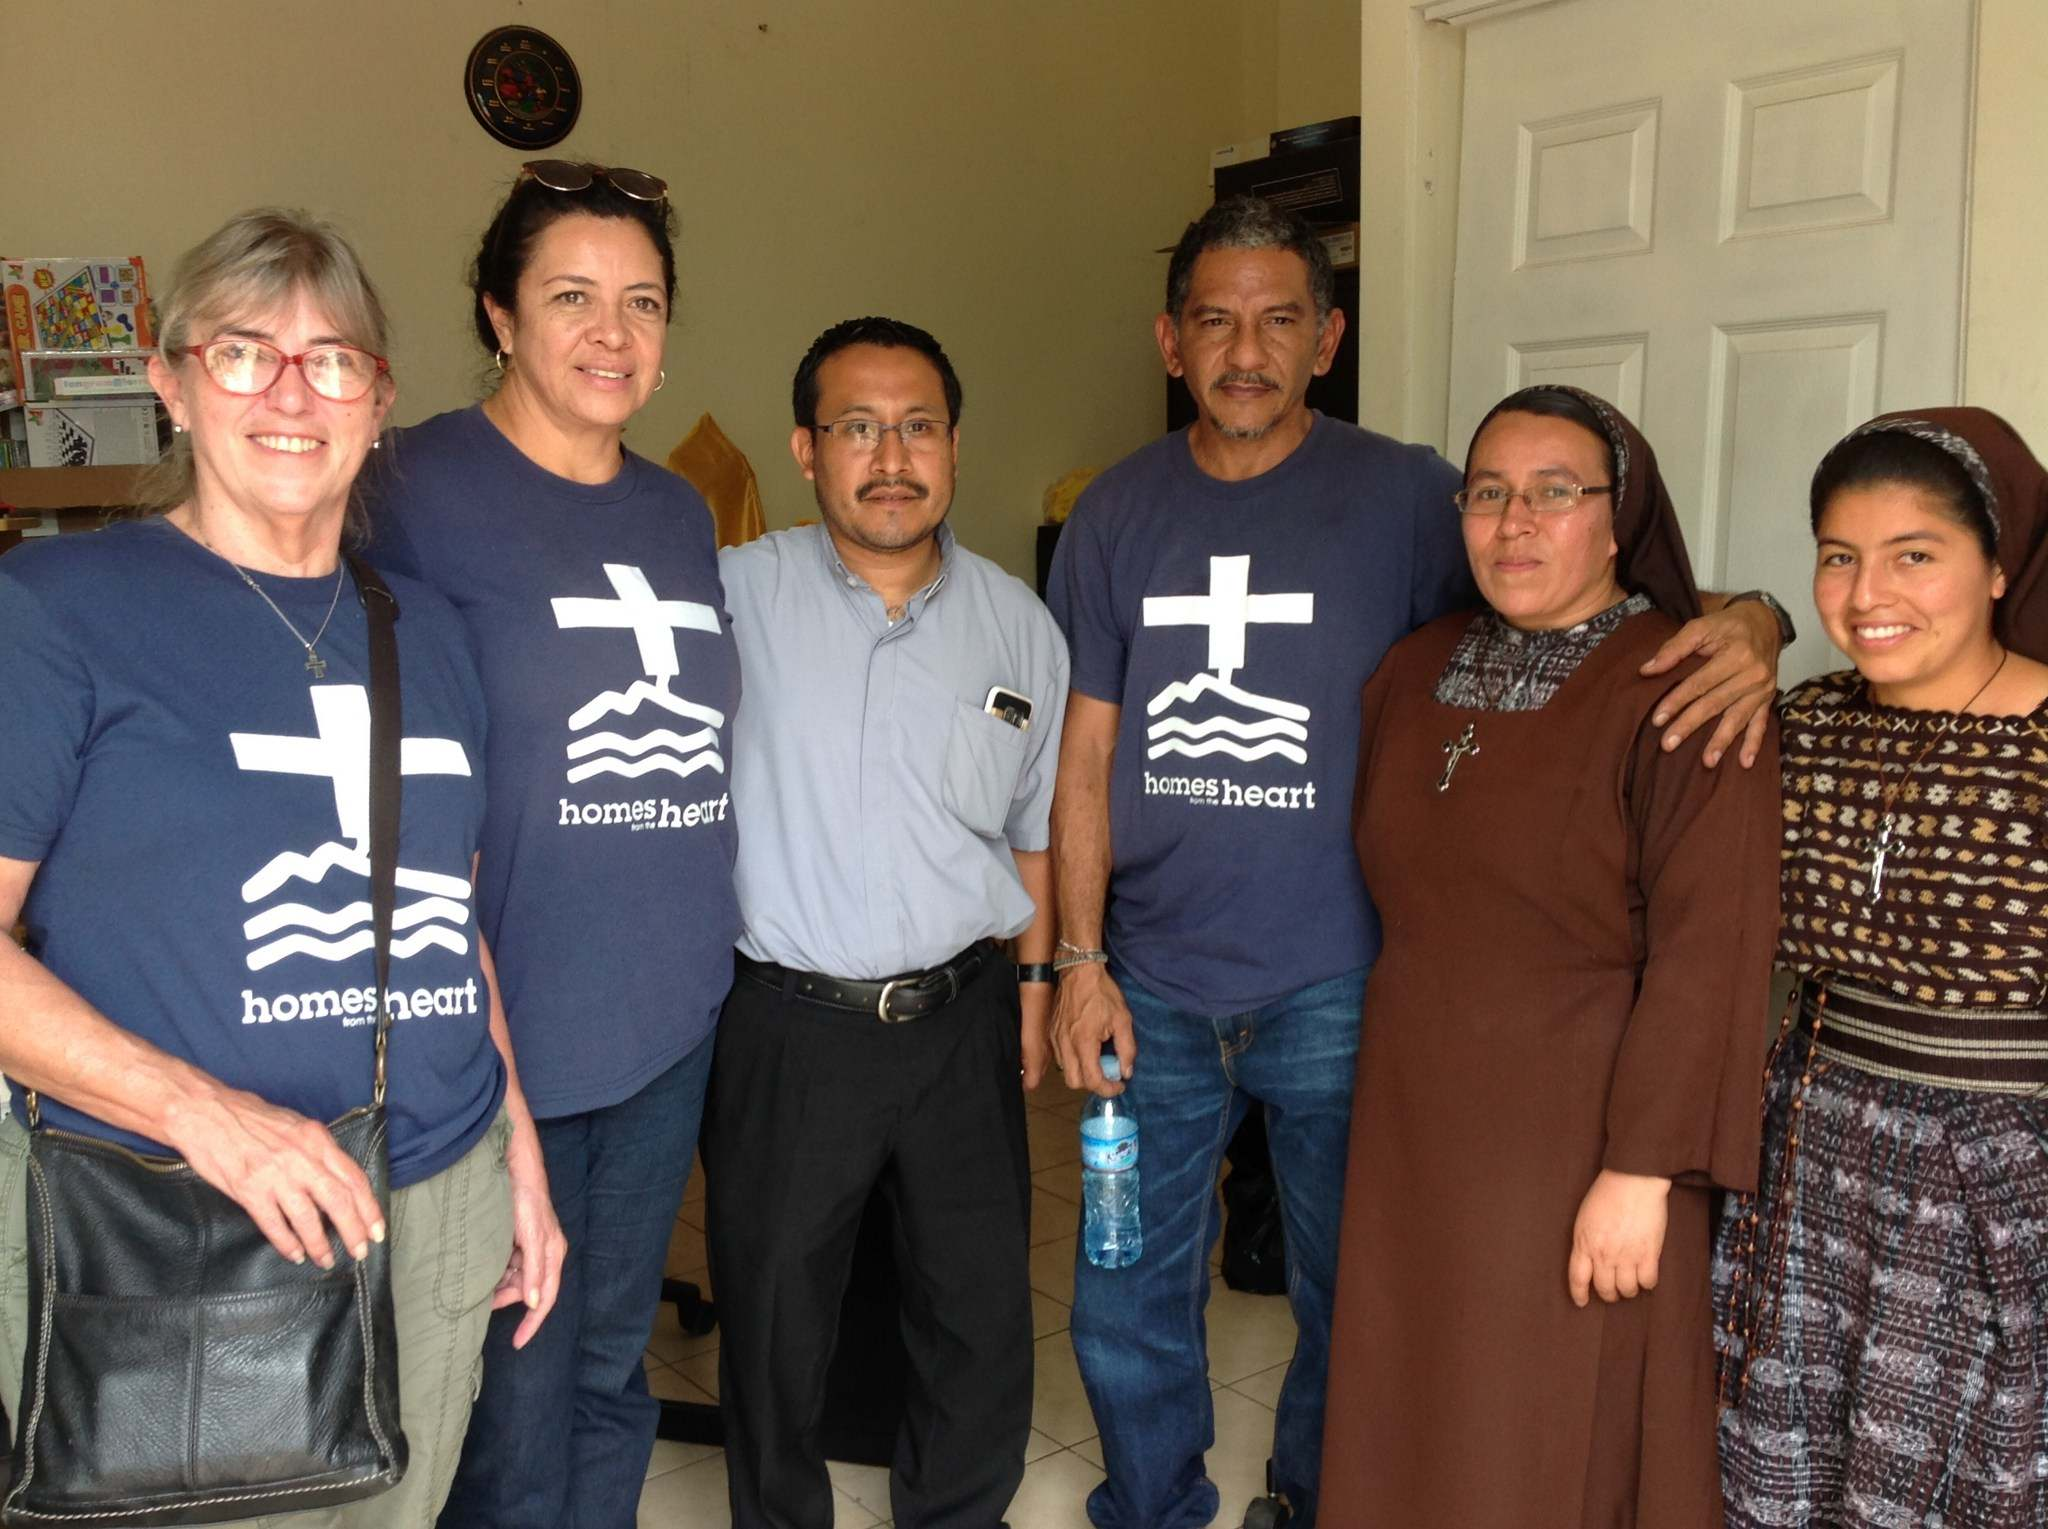 Homes_ staff with Padre Geraldo, paster of Our Lady of Guadelupe, Sr. Rosita and a young novice nun.jpg